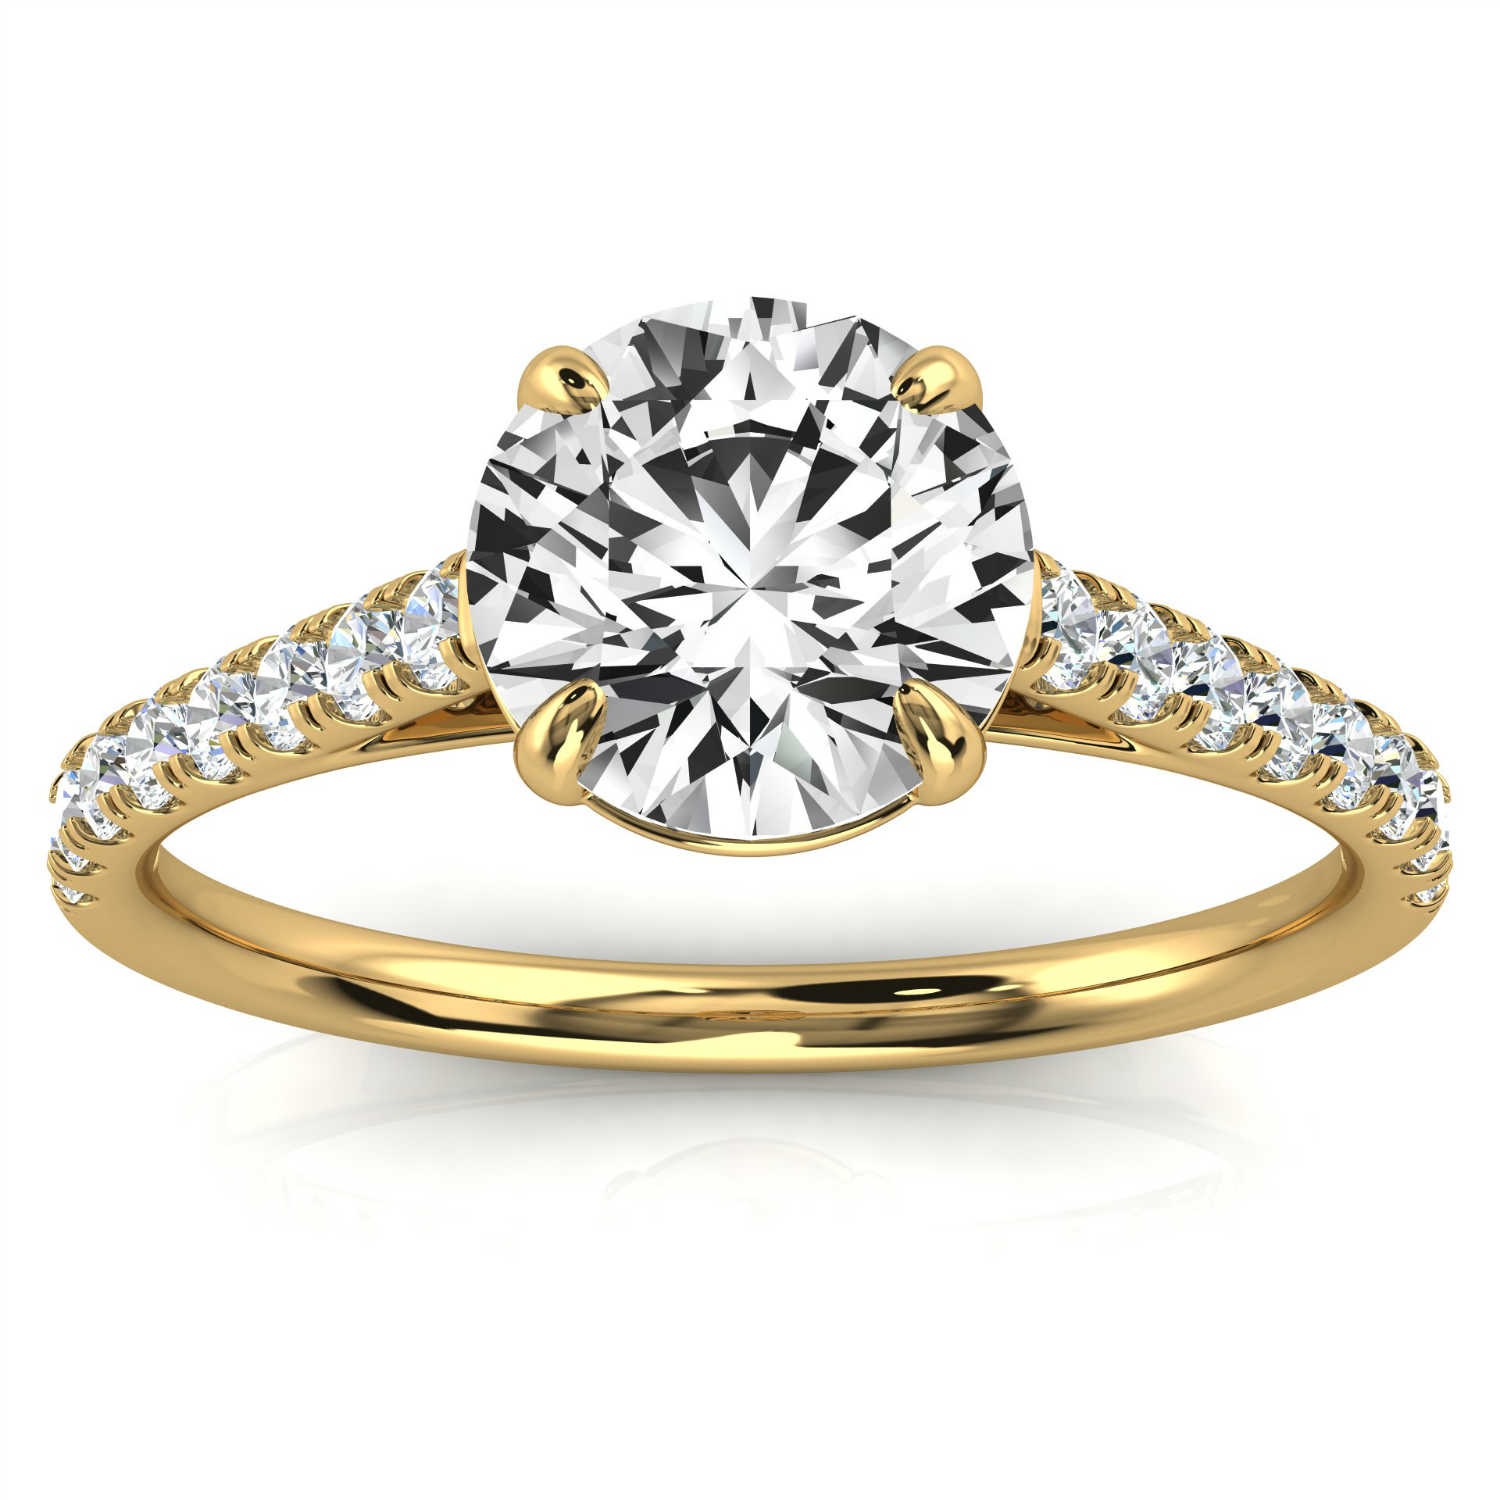 14K Yellow Gold Delicate Yaelle Micro-Prong Diamond Ring ( 1/5 ct. tw)